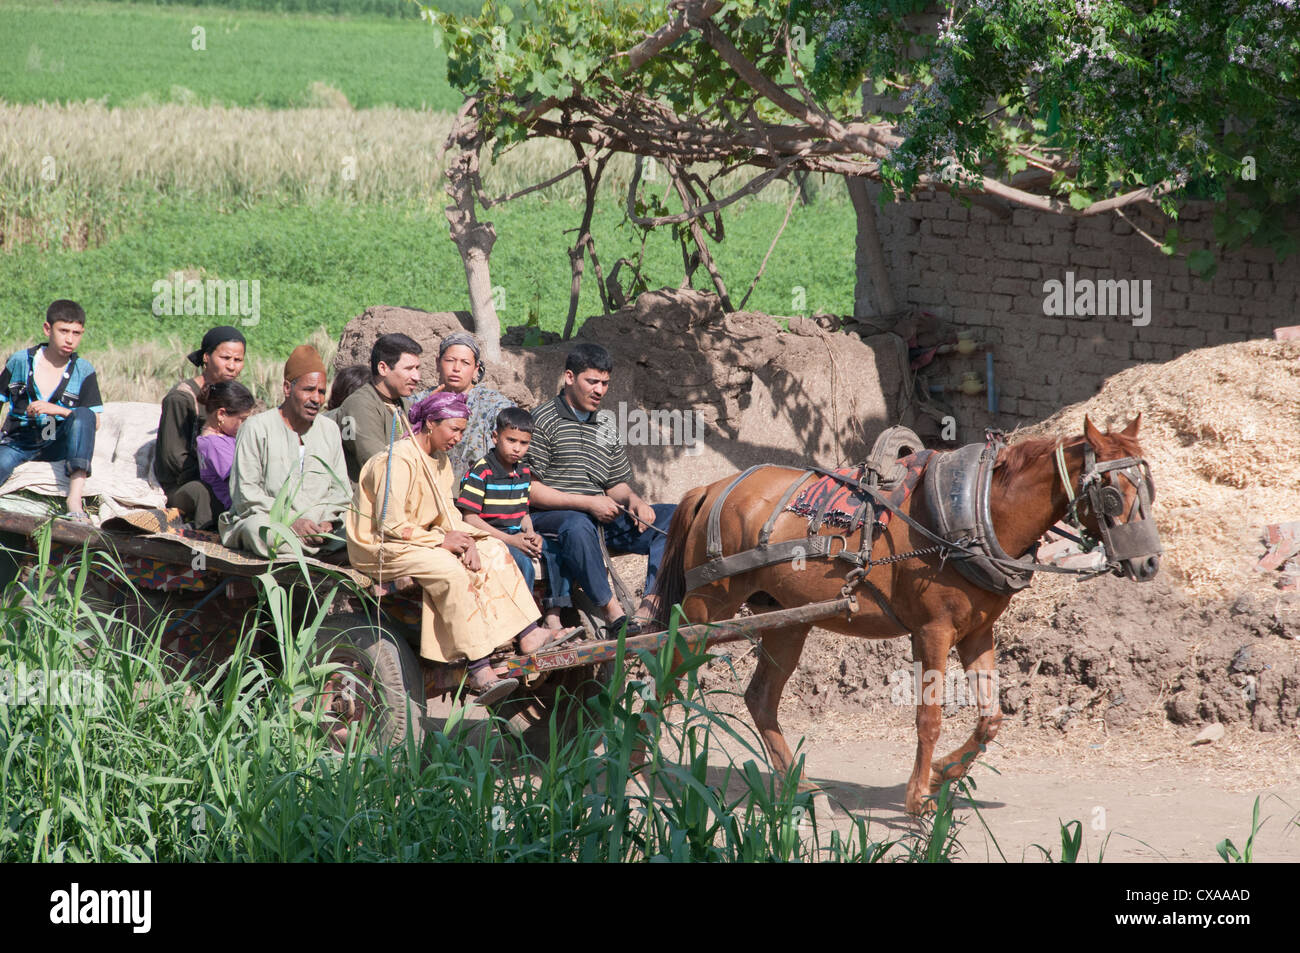 Daily life in the Egyptian countryside - Stock Image